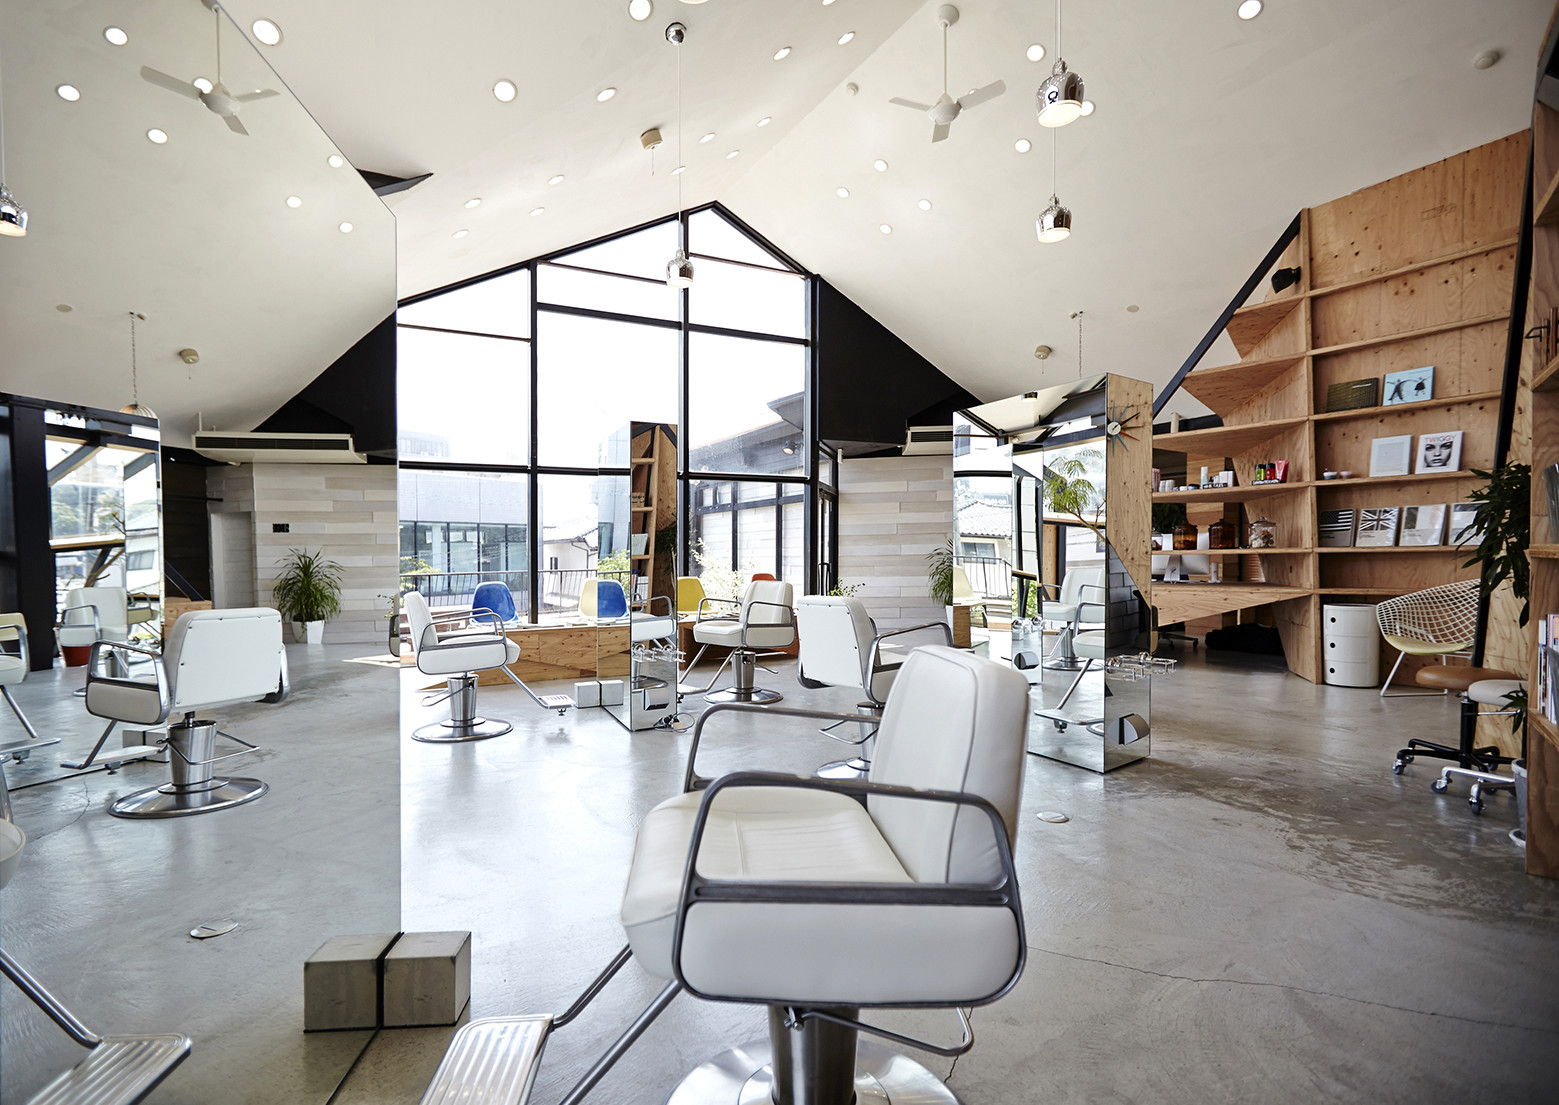 Hair salon slundre bhis archdaily for Salon nature